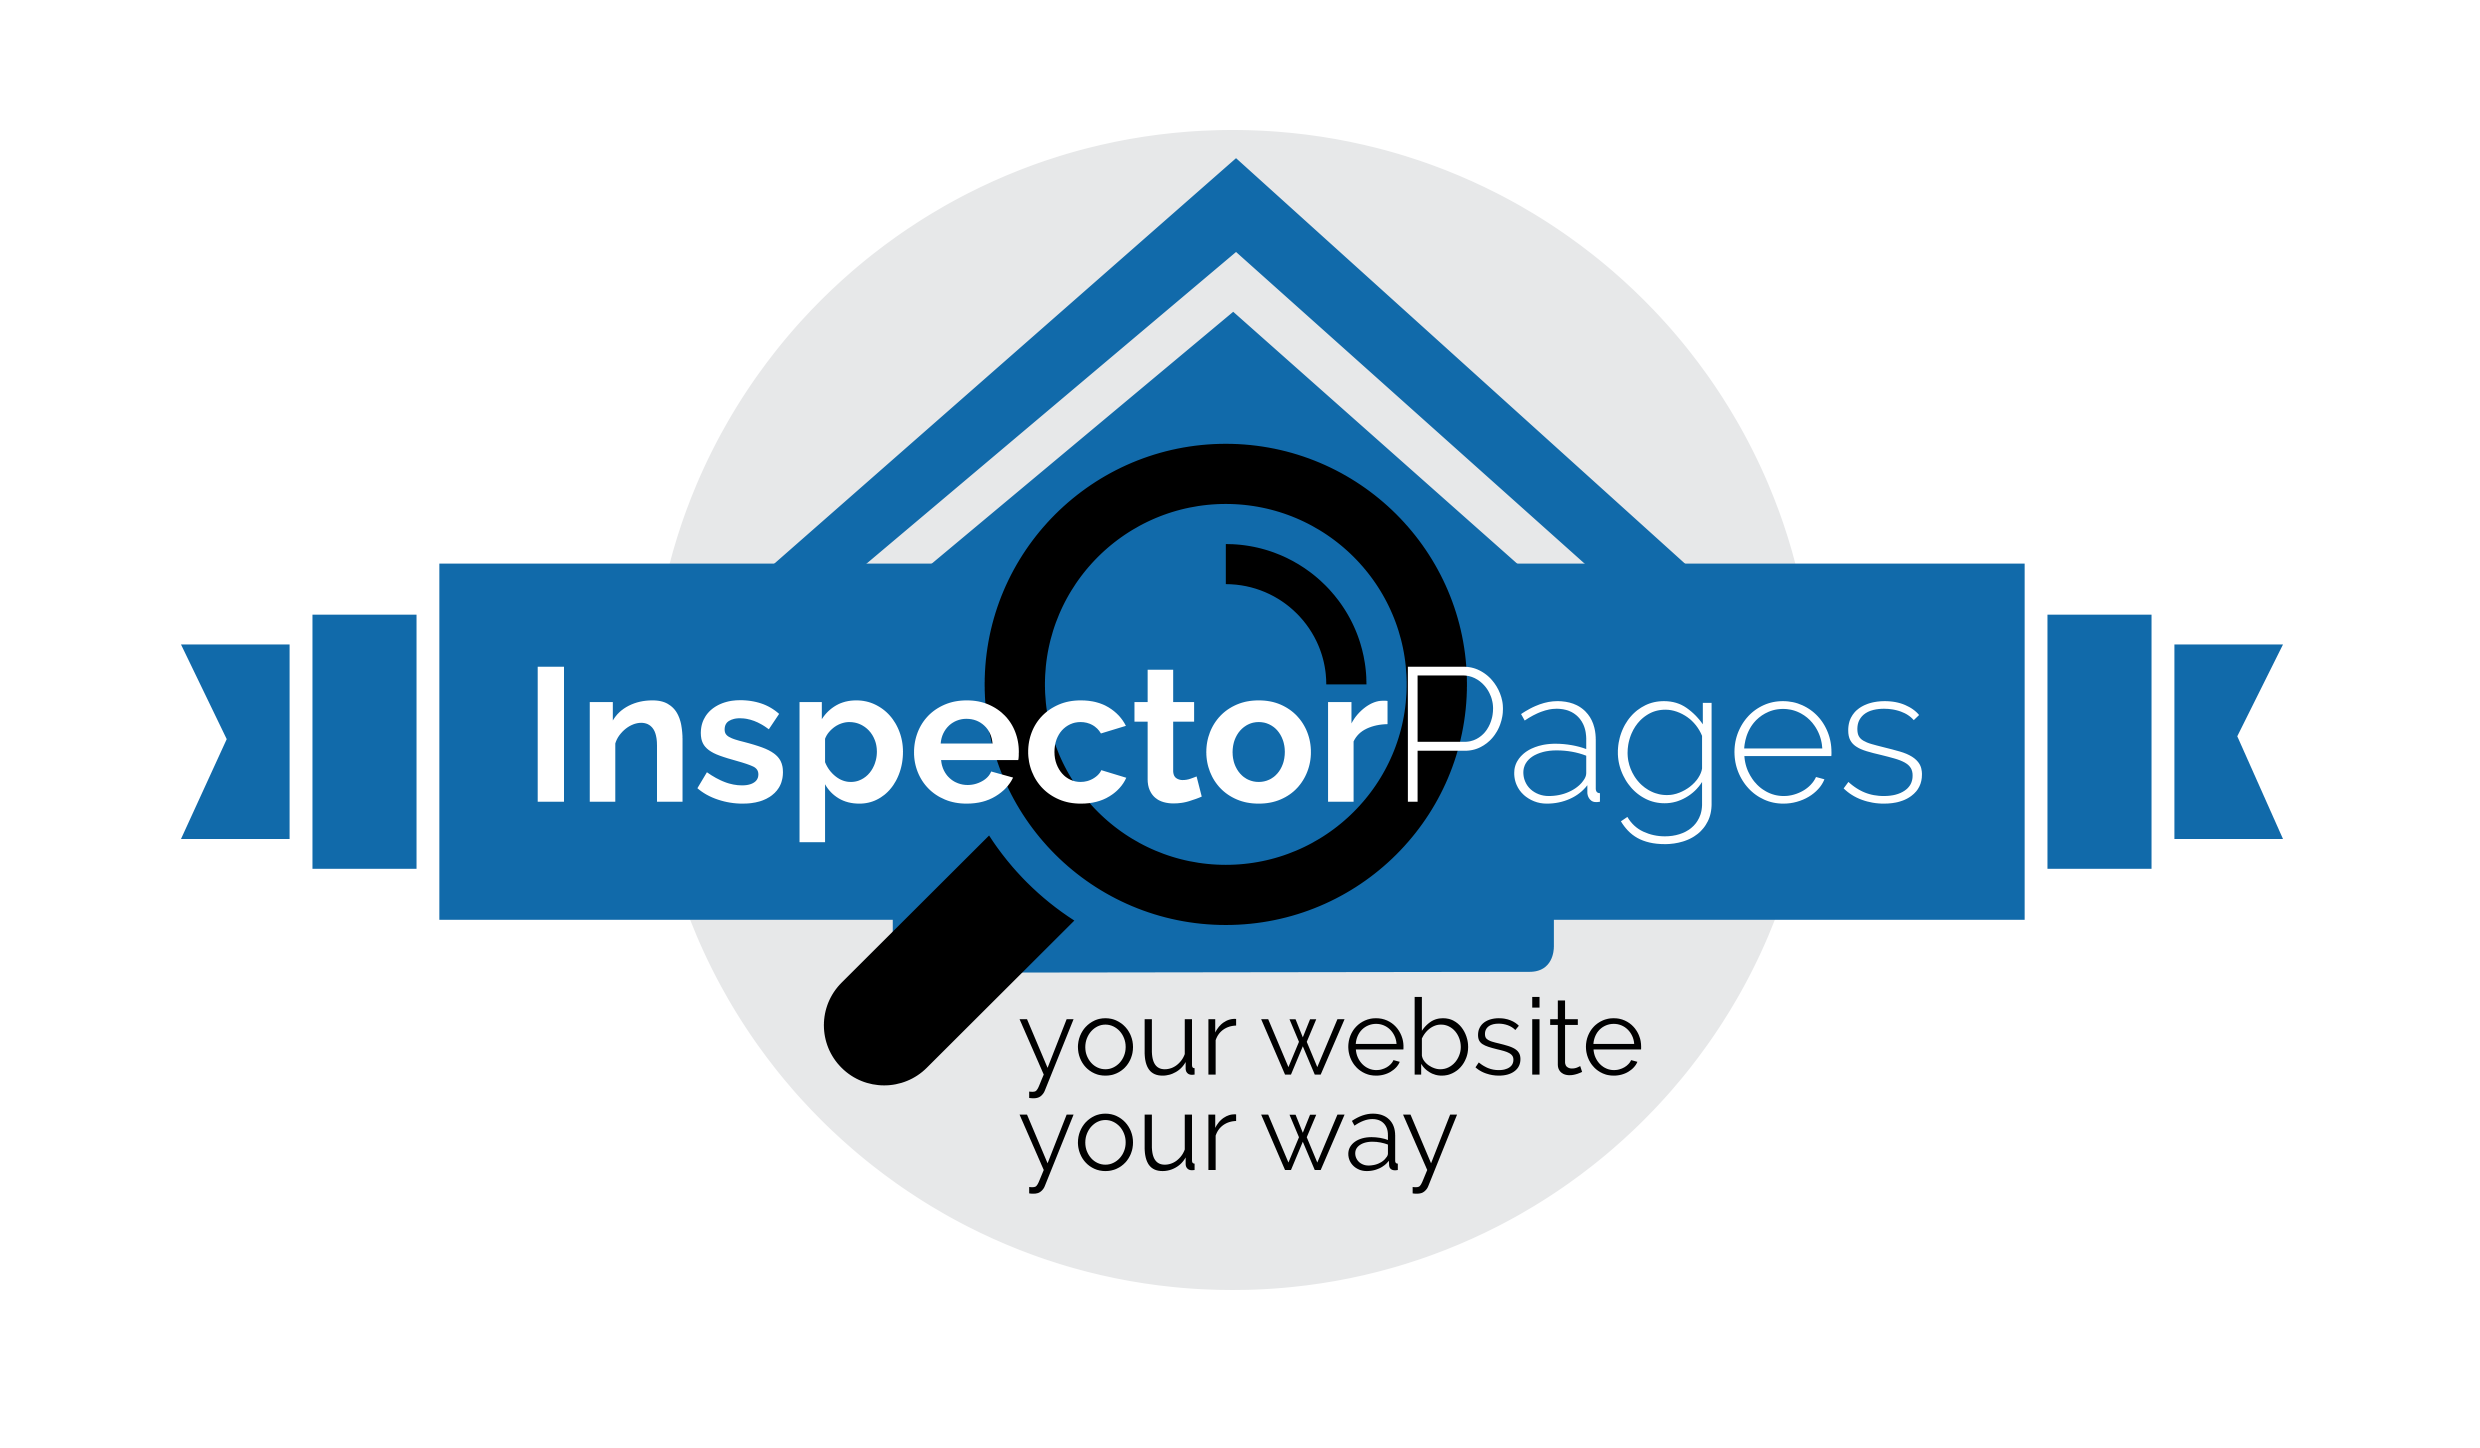 inspectorpage_logo_hd